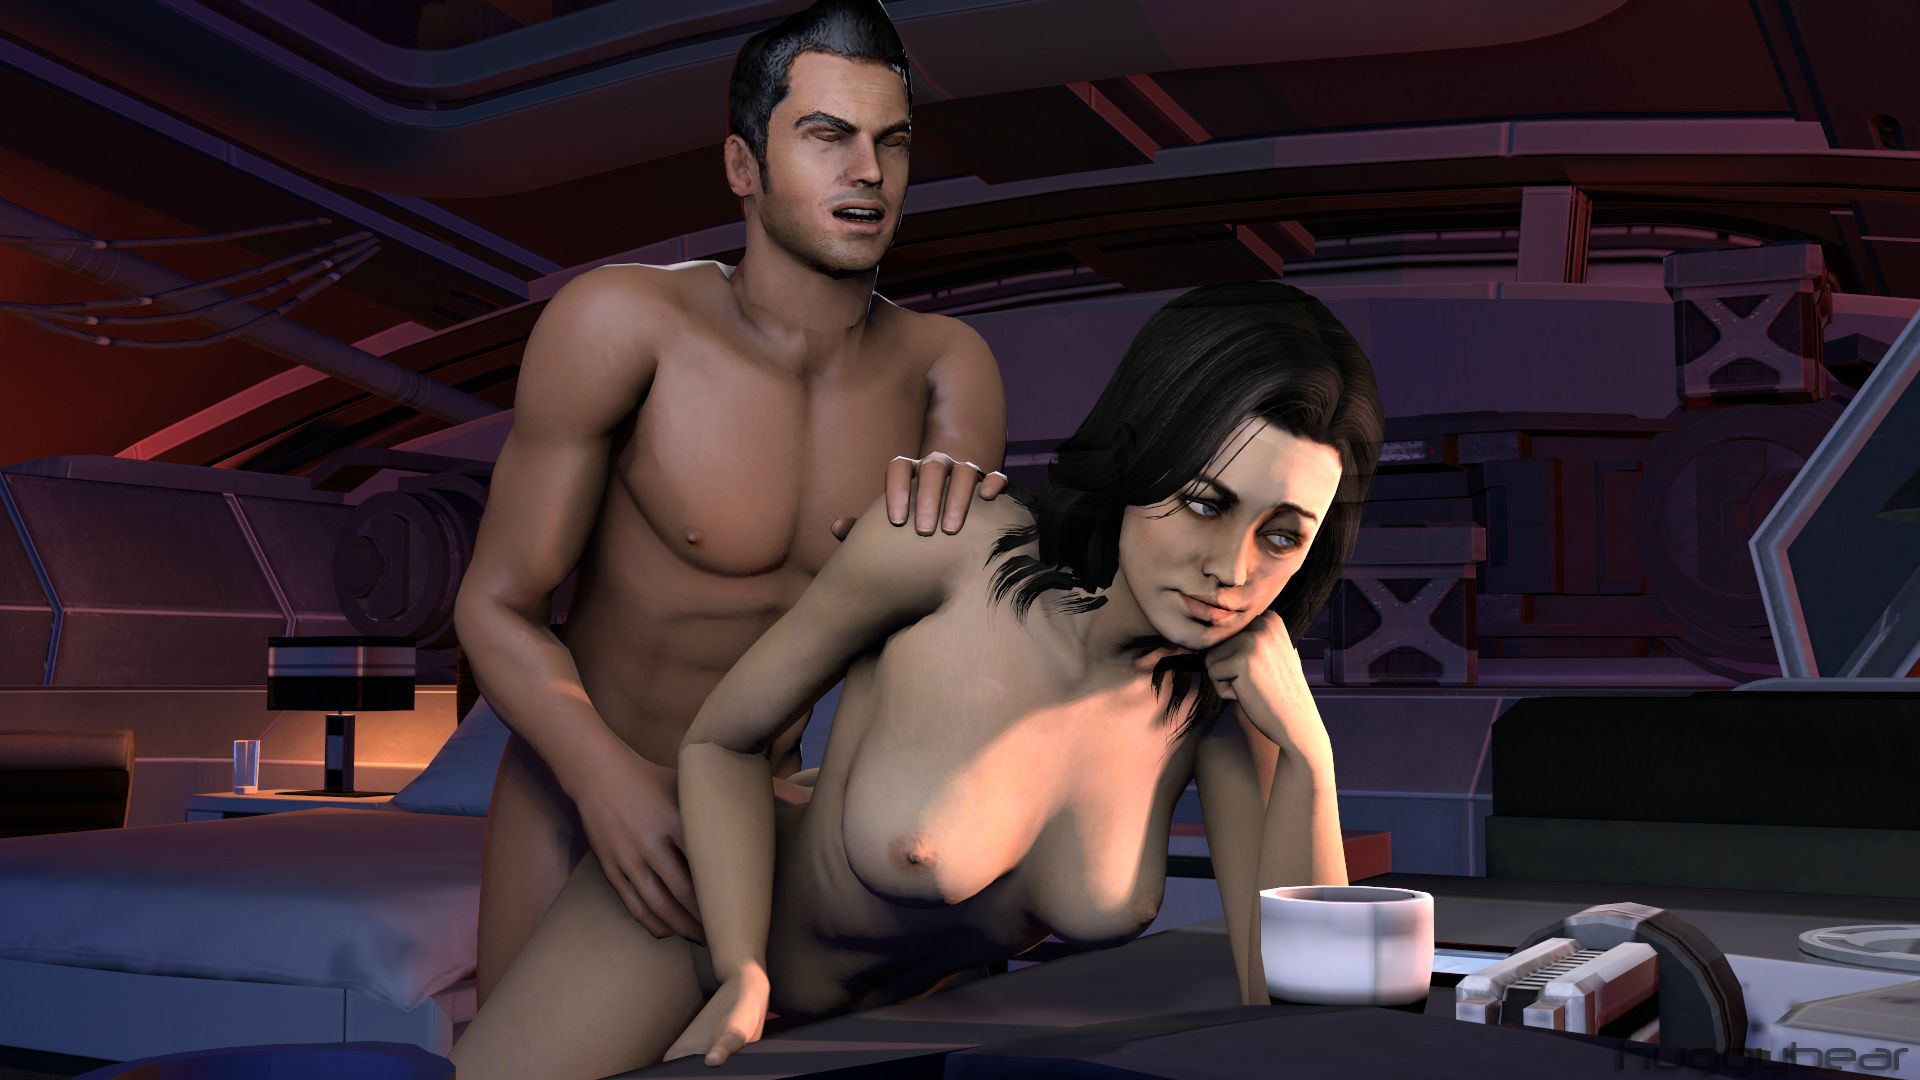 Mass effect 3 miranda porn sex scenes